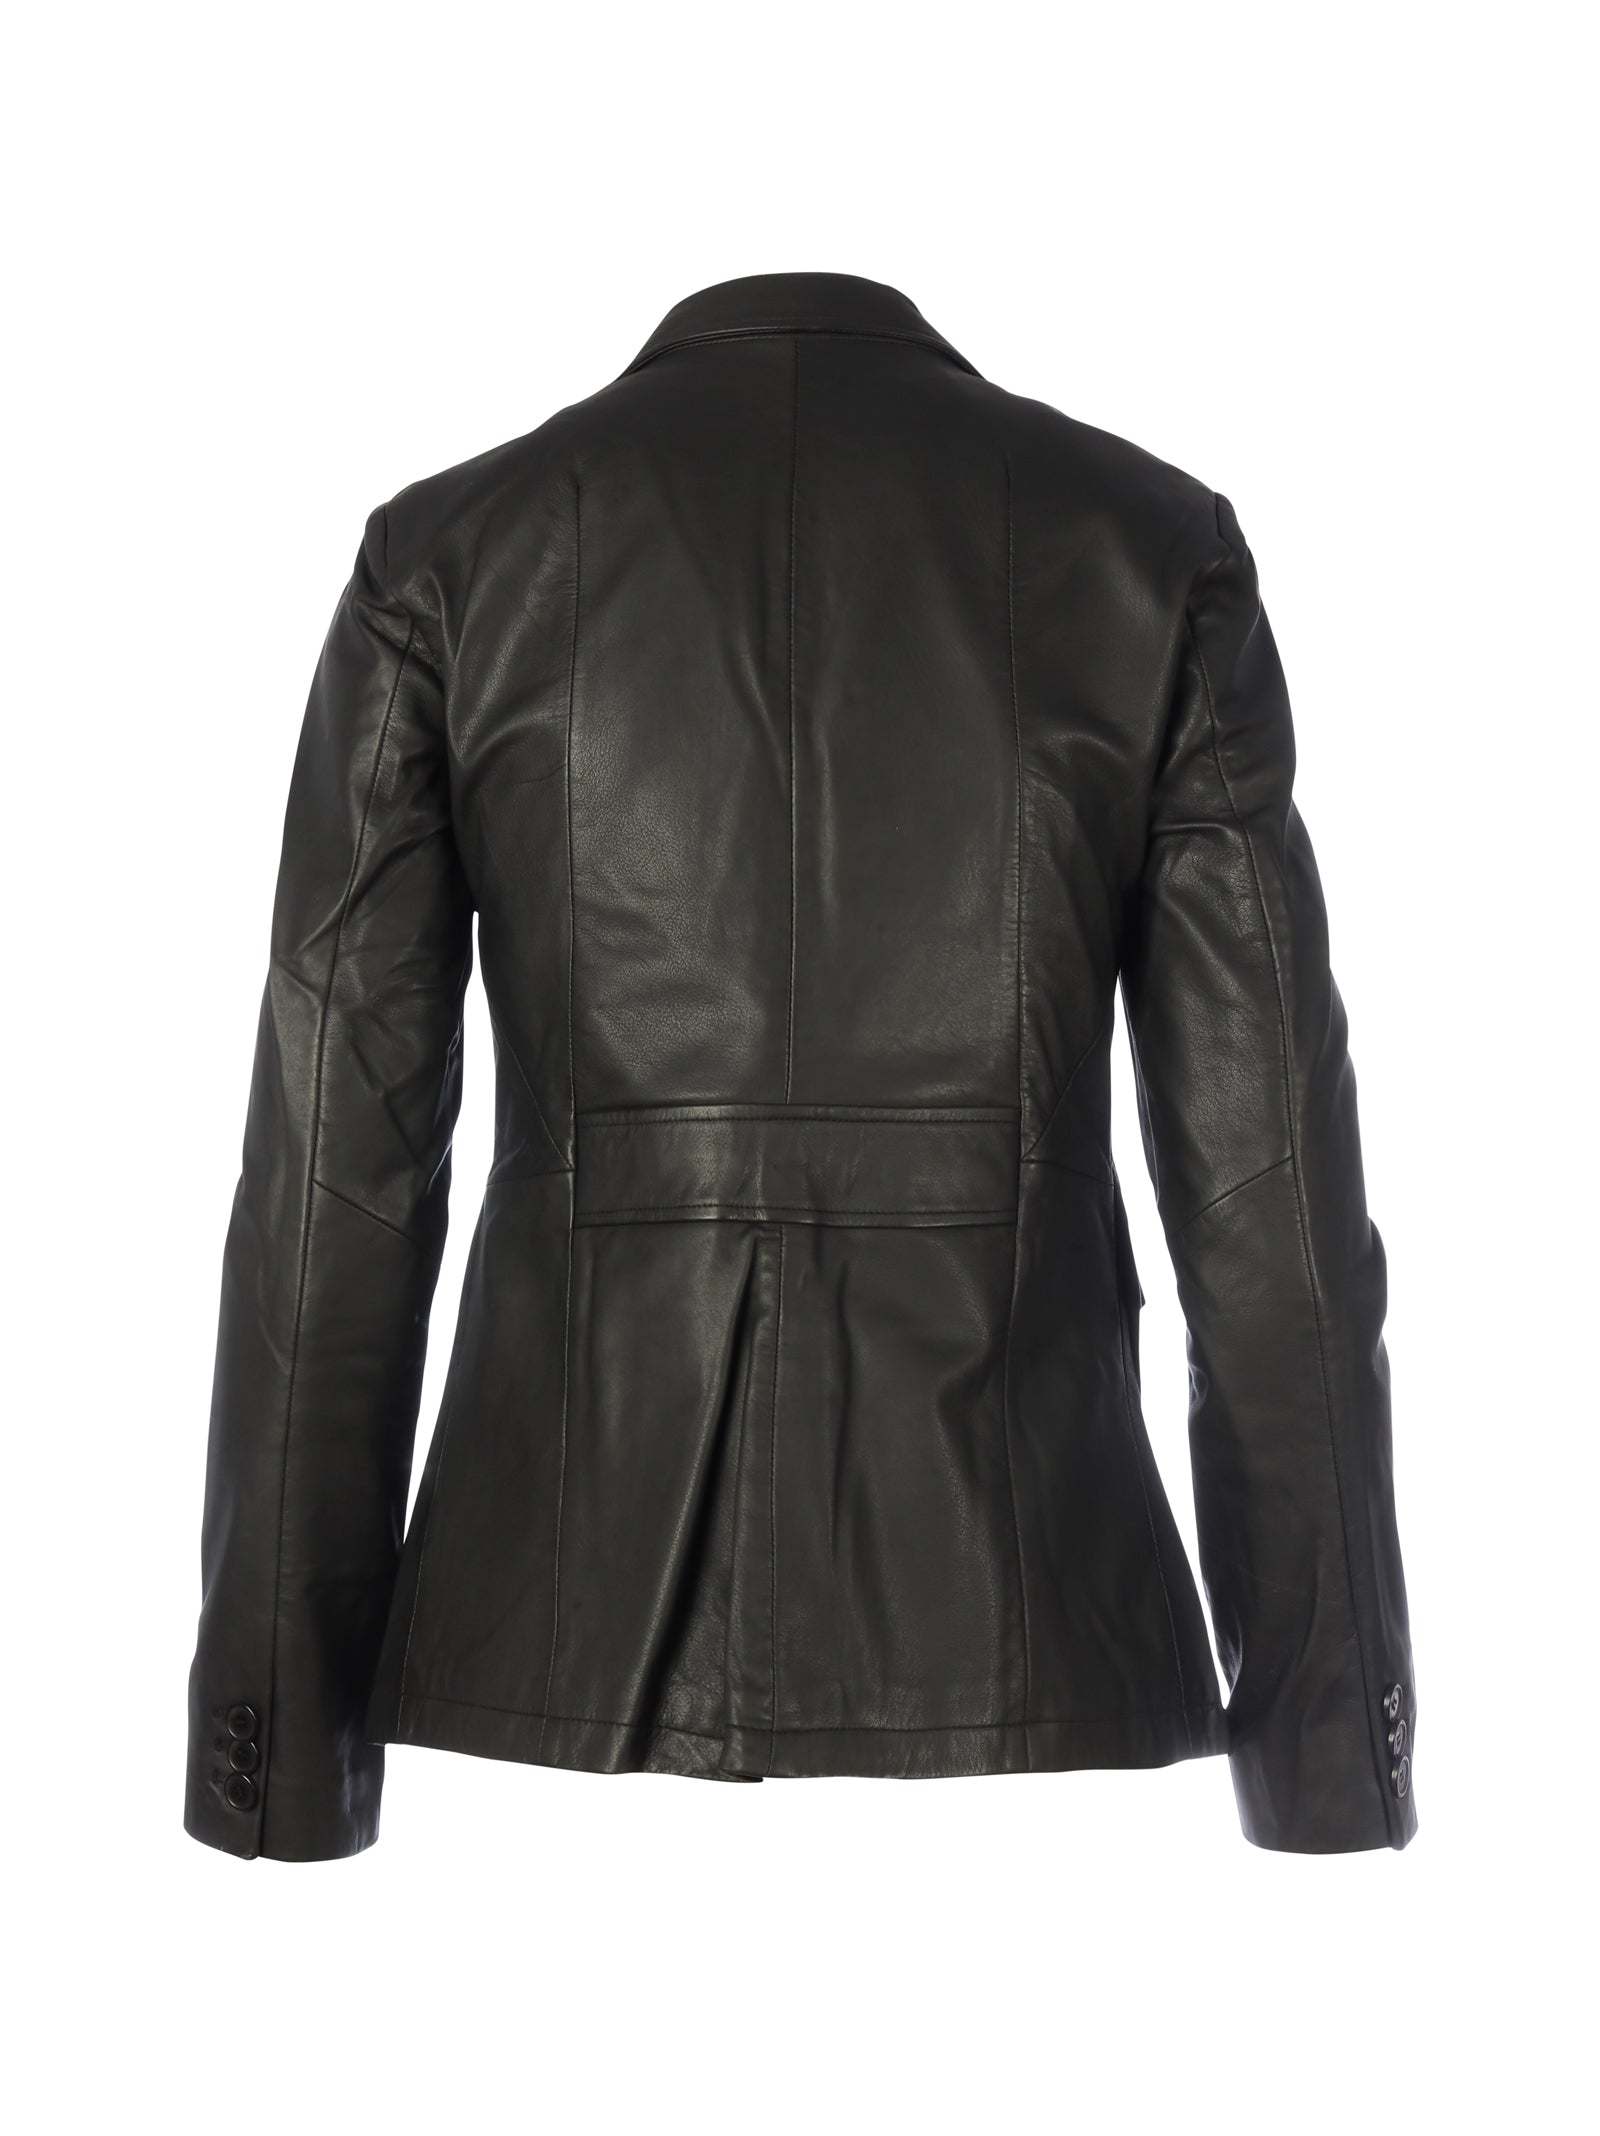 Black blazer leather